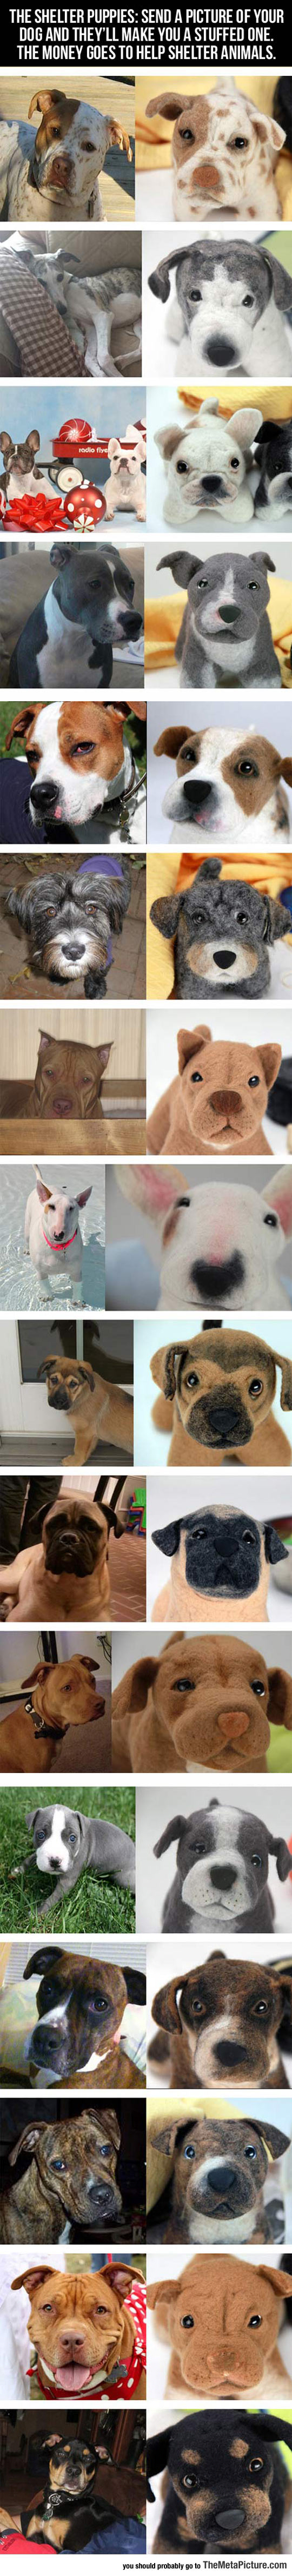 cool-pets-toy-dogs